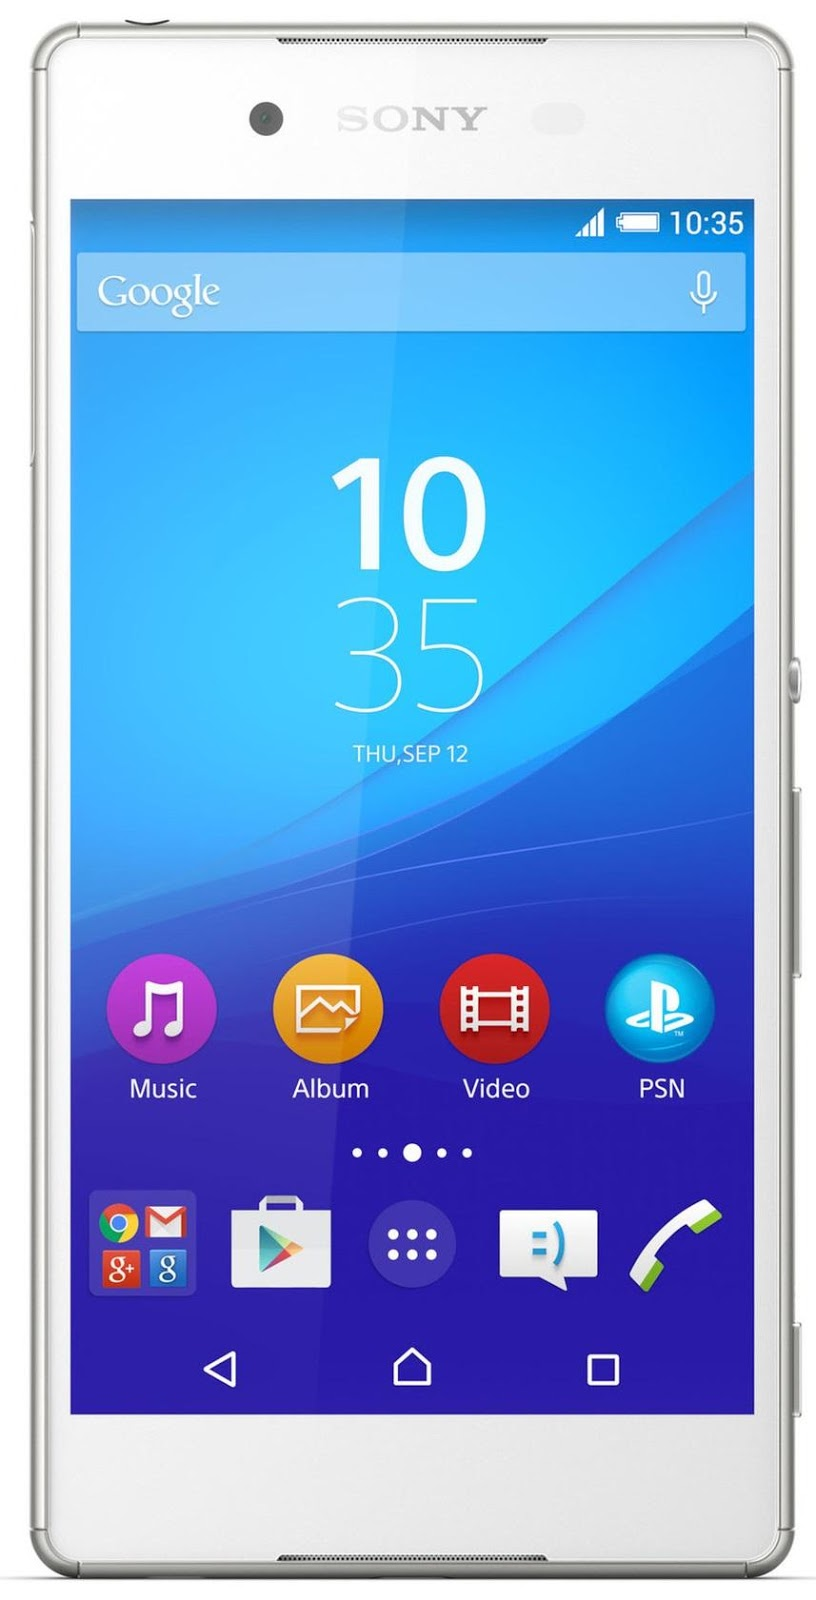 C:Users-Desktopsony-announces-the-sony-xperia-z4-1198x1920.jpg